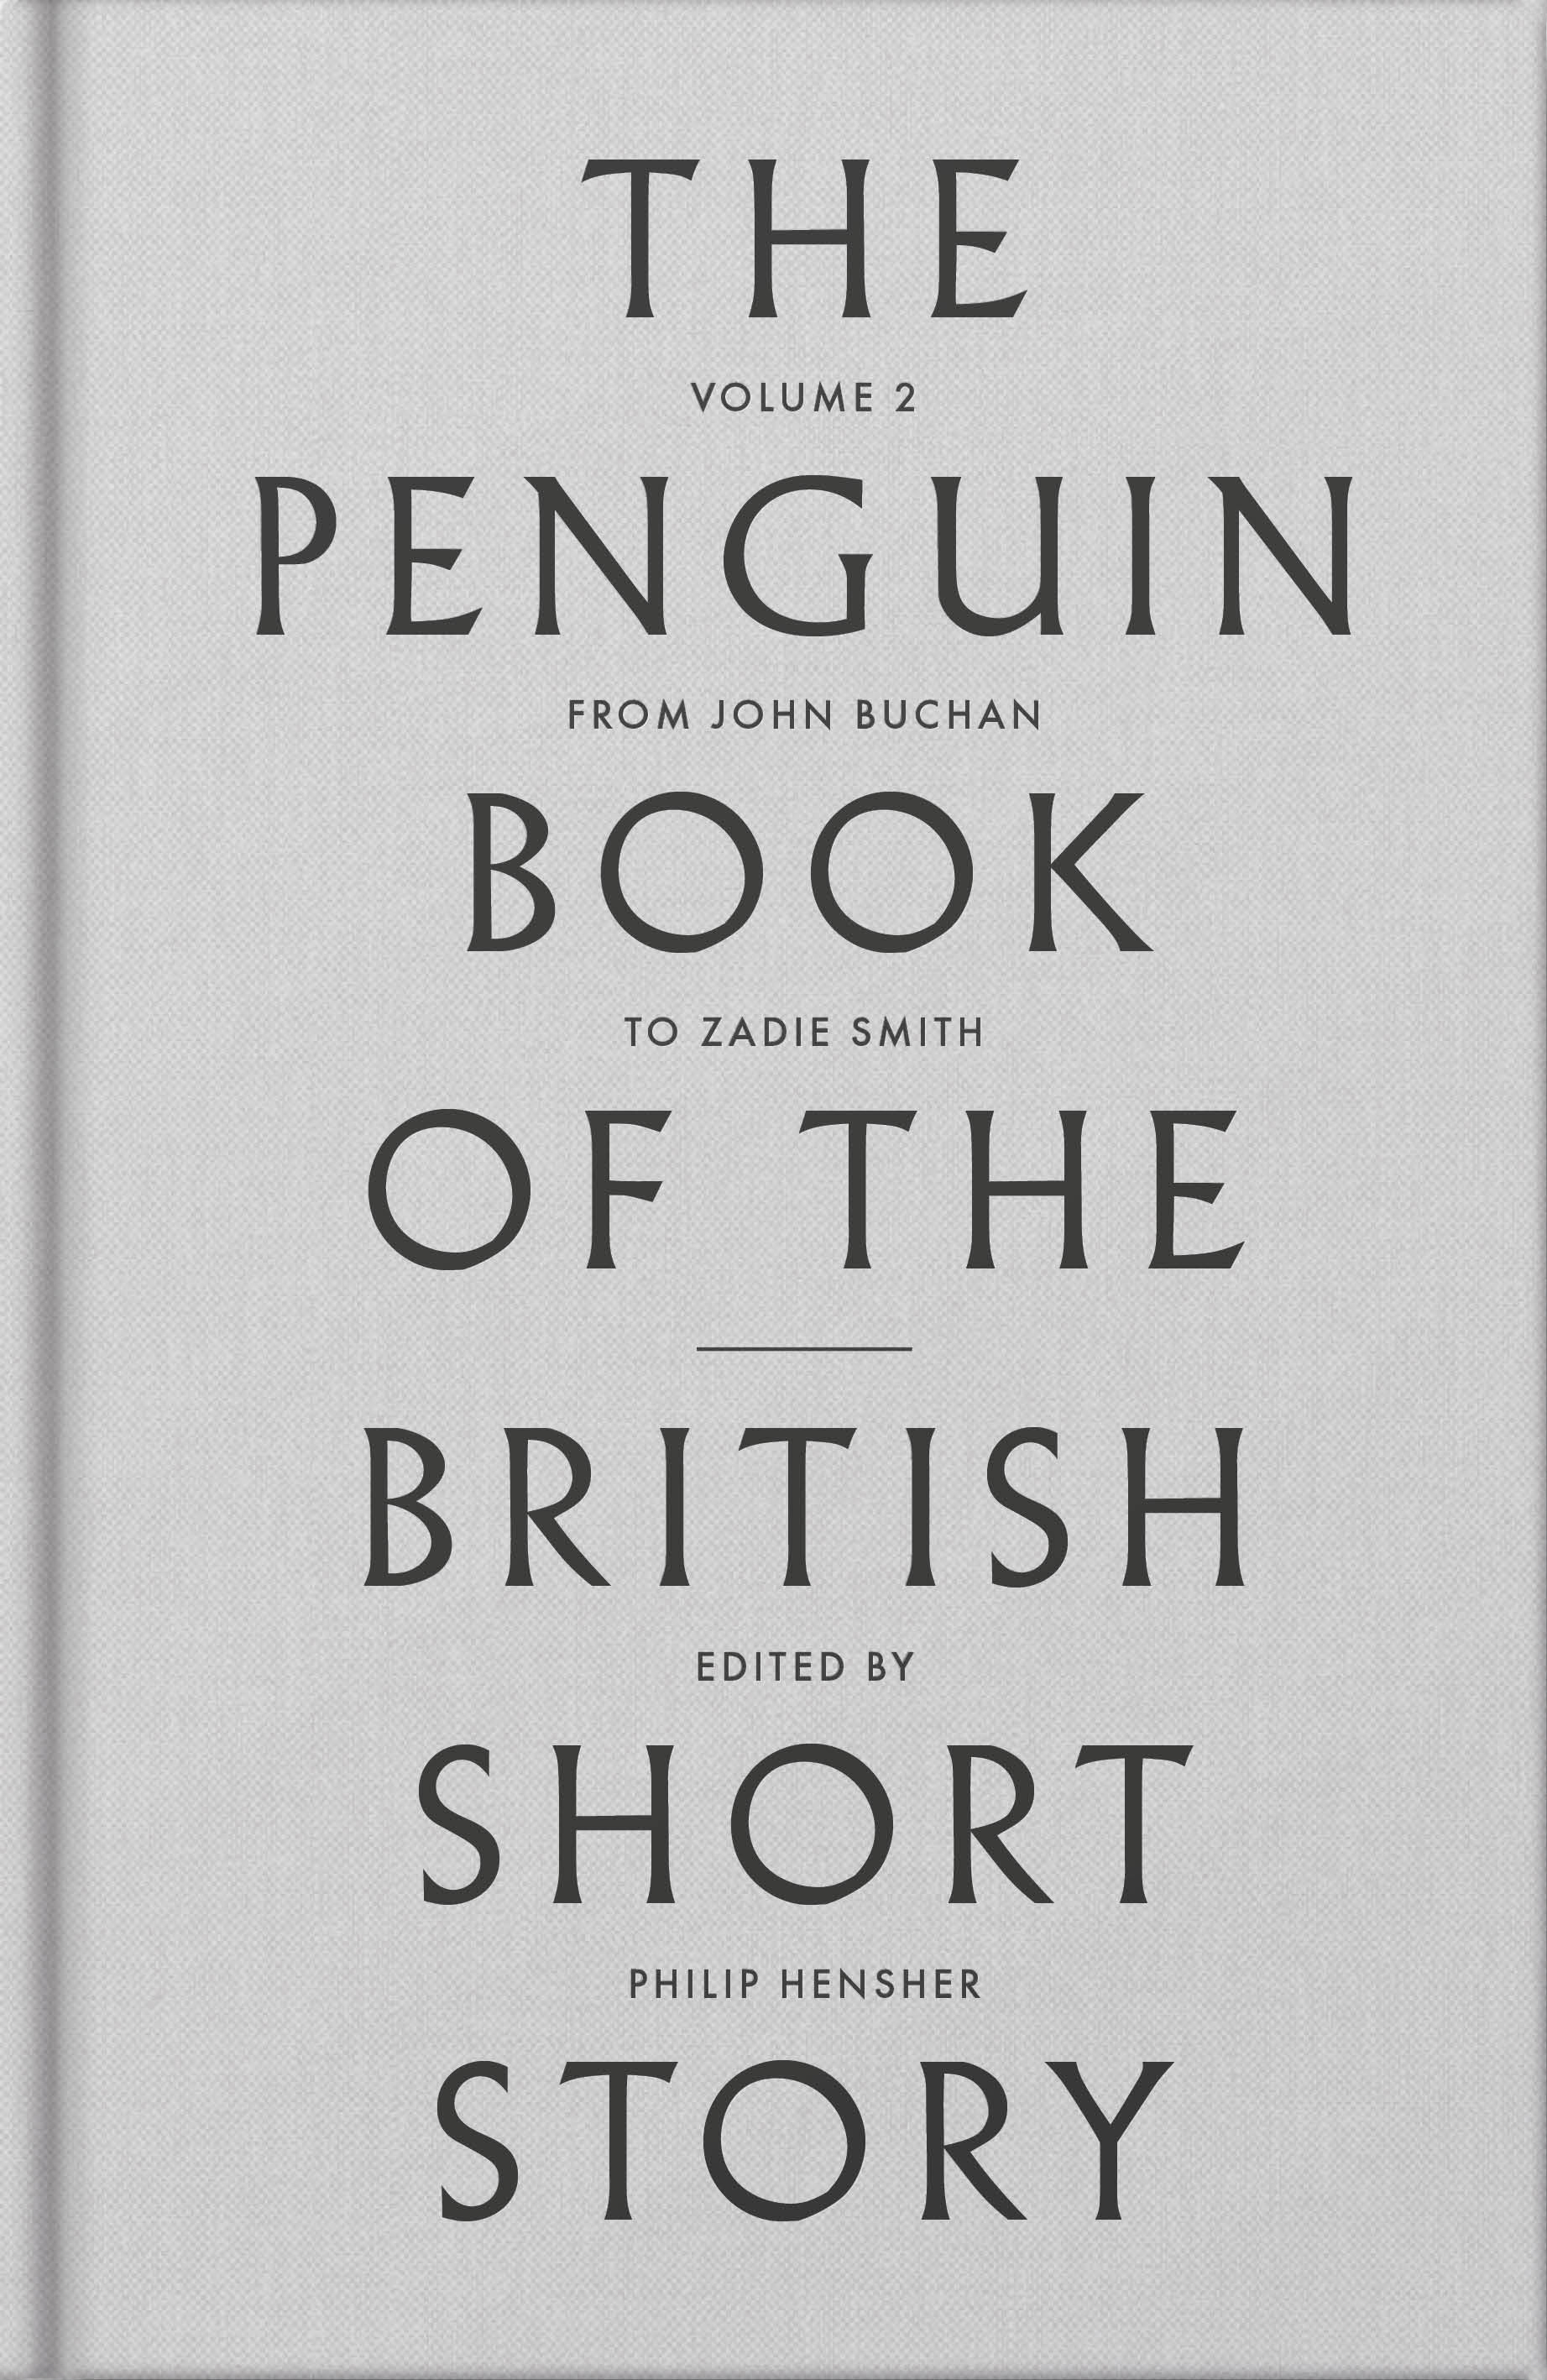 The Penguin Book of the British Short Story: IIFrom John Buchan to Zadie Smith